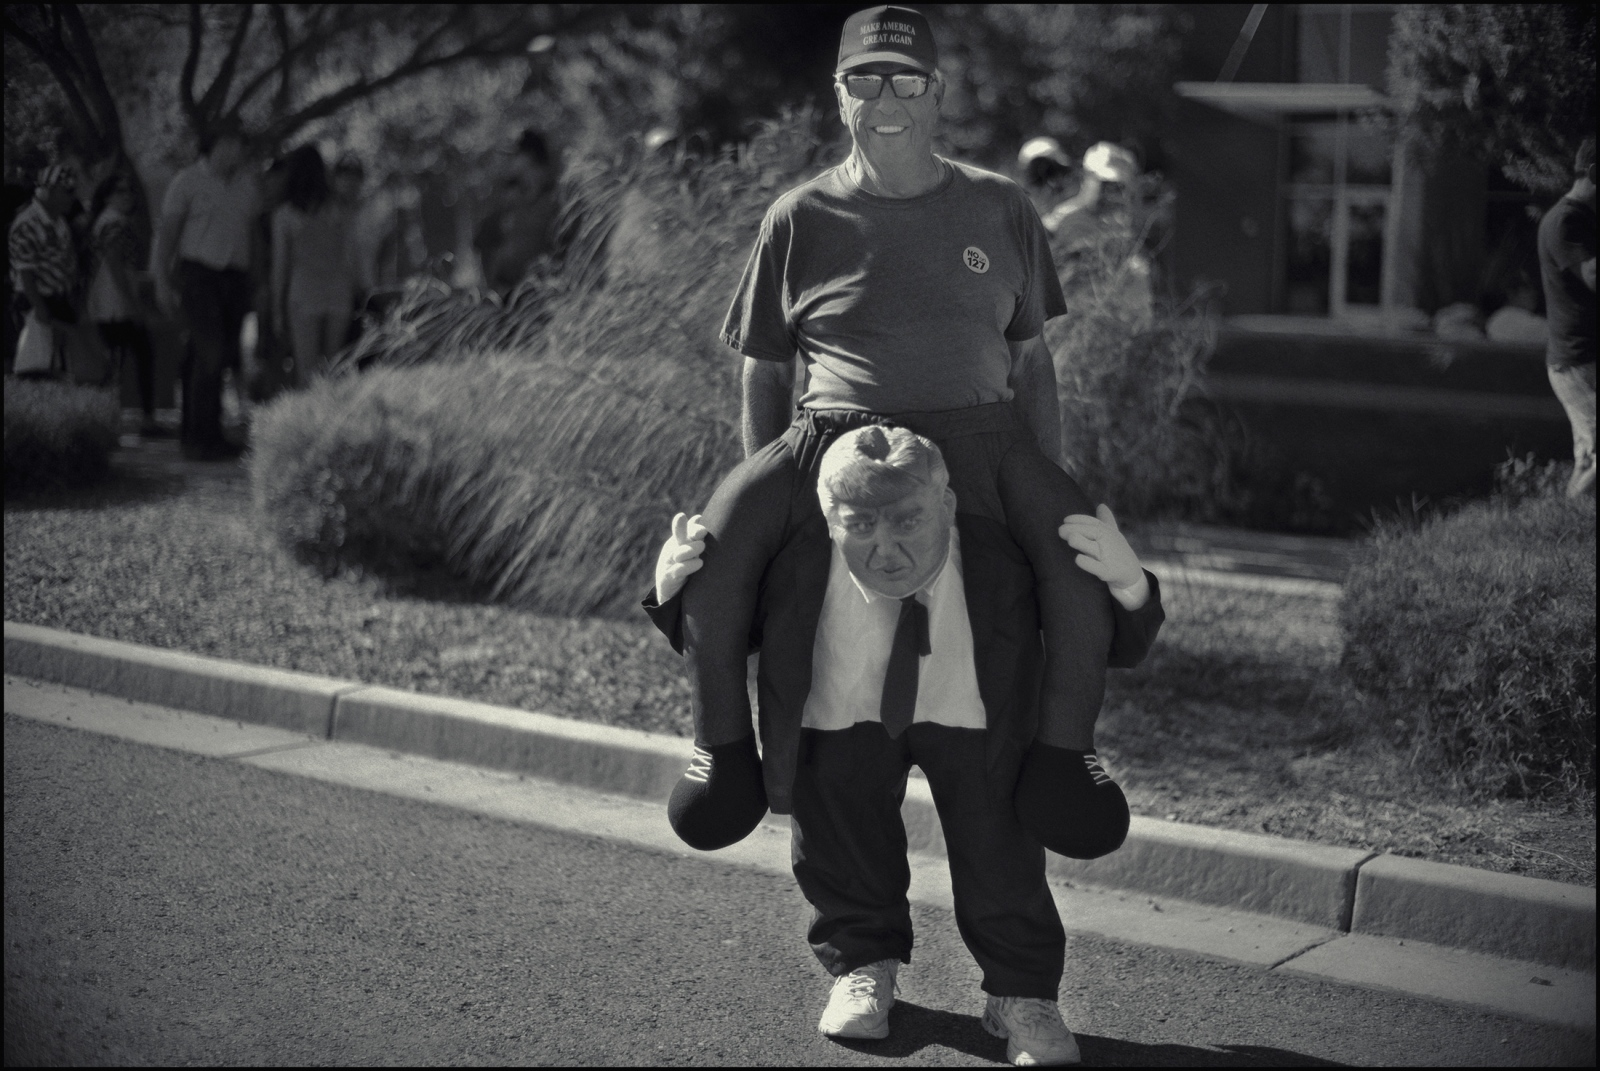 Supporter rides Trump. Political rally, Mesa, AZ. 2018.